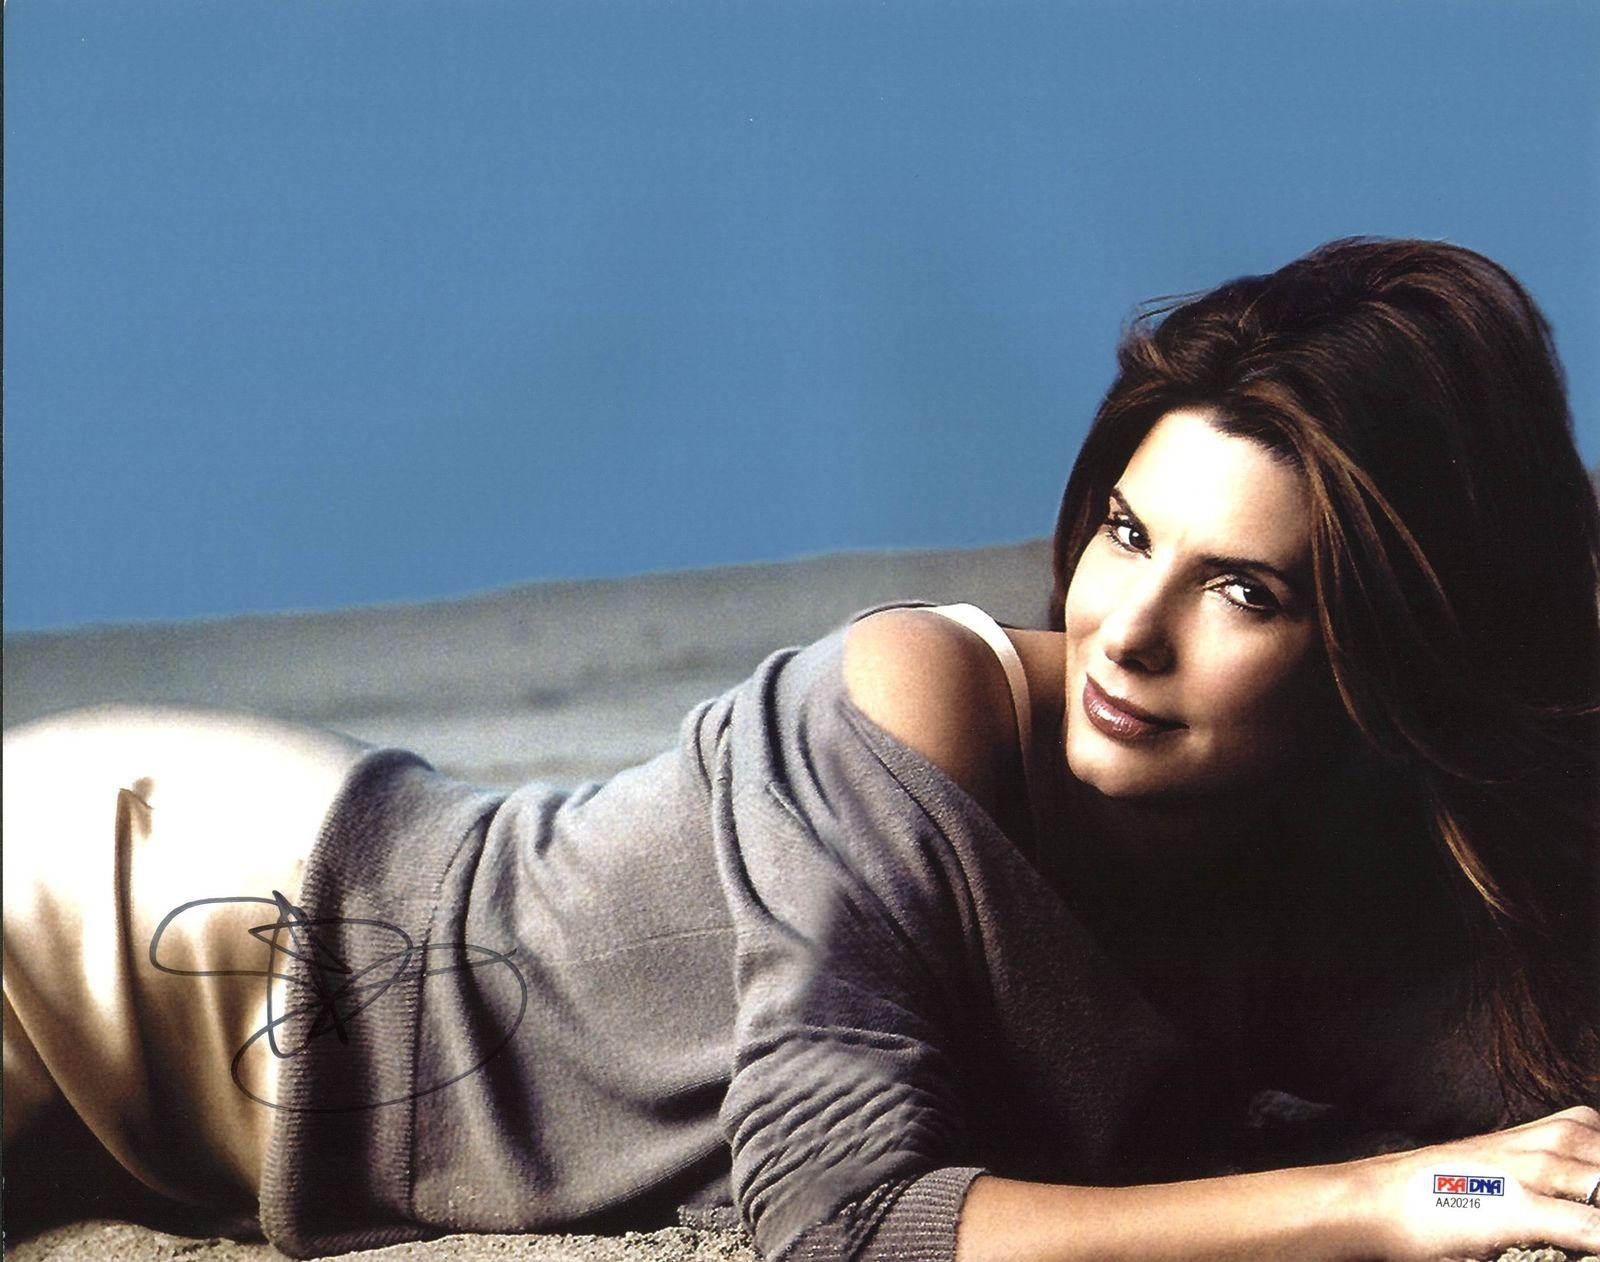 Sandra Bullock Sexy Signed 11X14 Photo Autographed PSA/DNA #AA20216